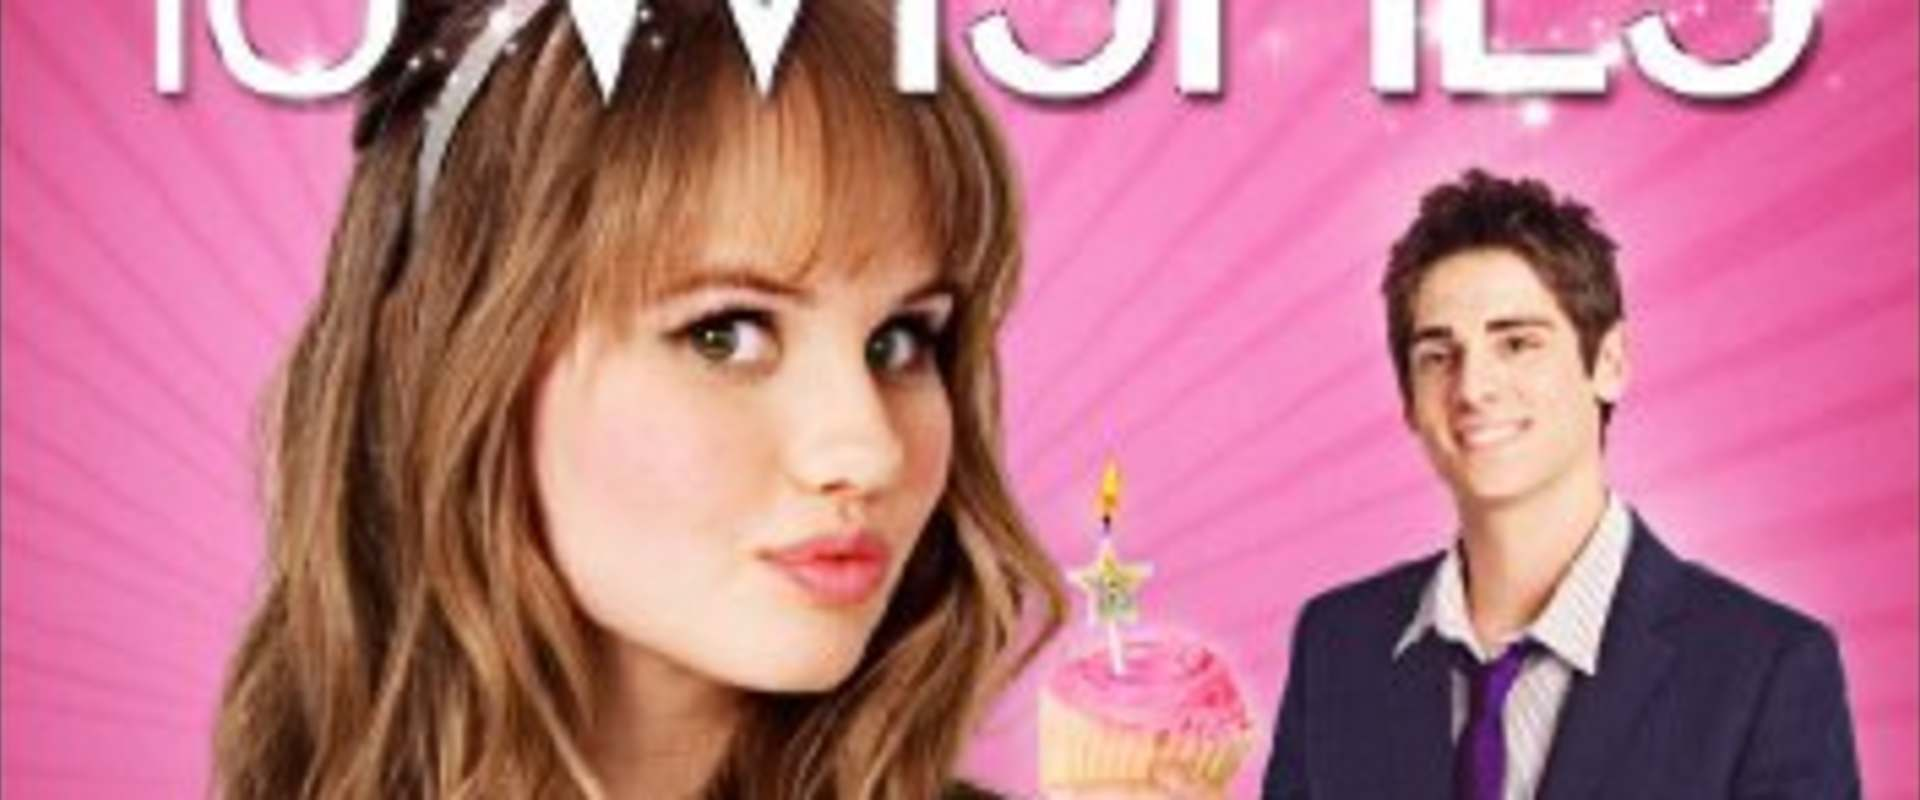 16 Wishes background 2